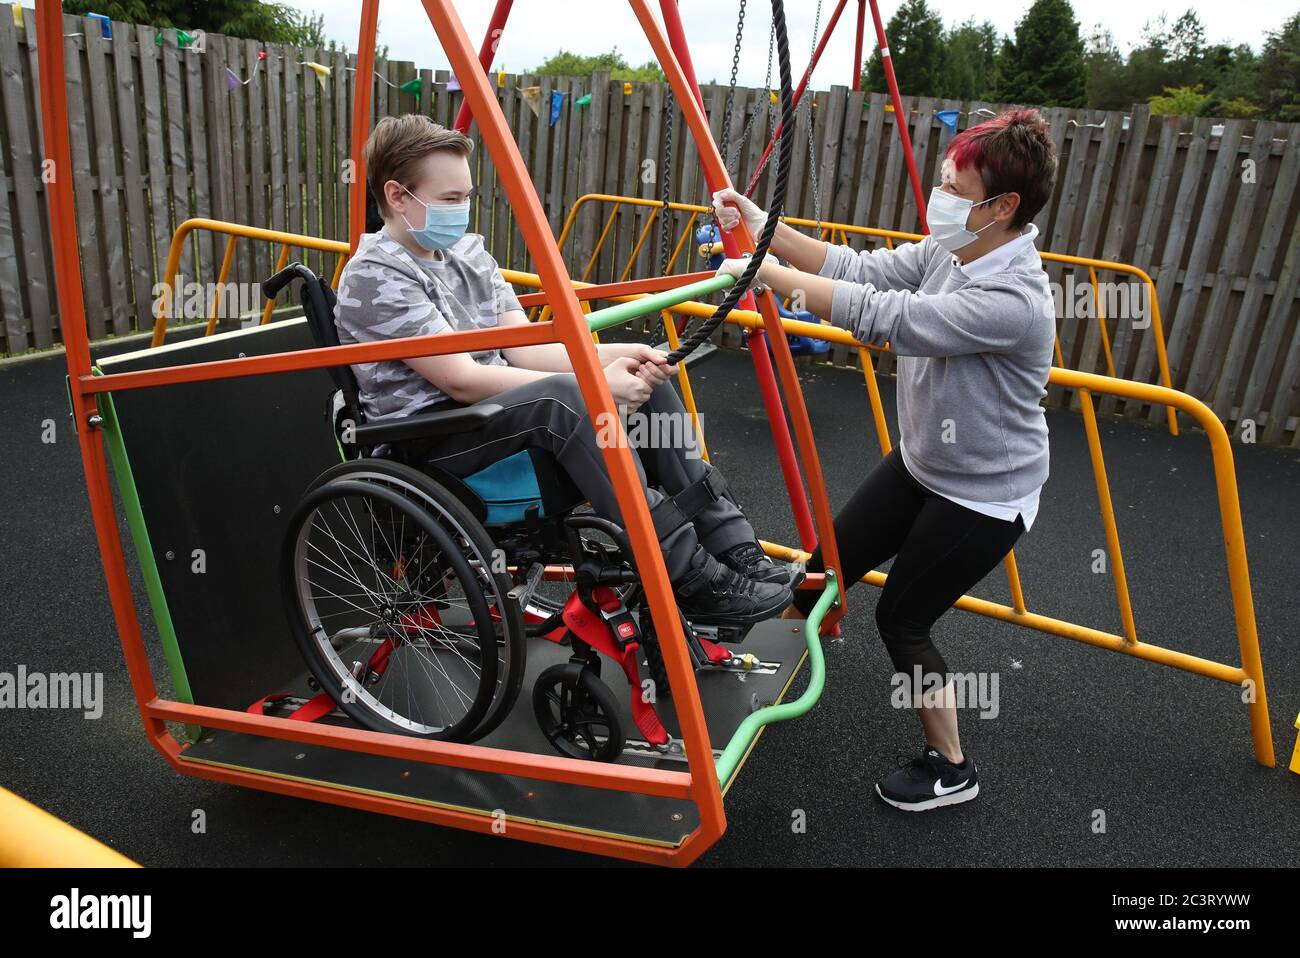 Gregor Marshall alongside Early Years Practitioner Catherine Anderson as Gregor has a ride on the wheelchair swing in the outside therapy area at the Craighalbert Centre. Coronavirus adaptations have been installed at the Scottish Centre for Children with Motor Impairments, Craighalbert Centre, Cumbernauld, as Scotland continues gradually lifting coronavirus lockdown measures. Stock Photo